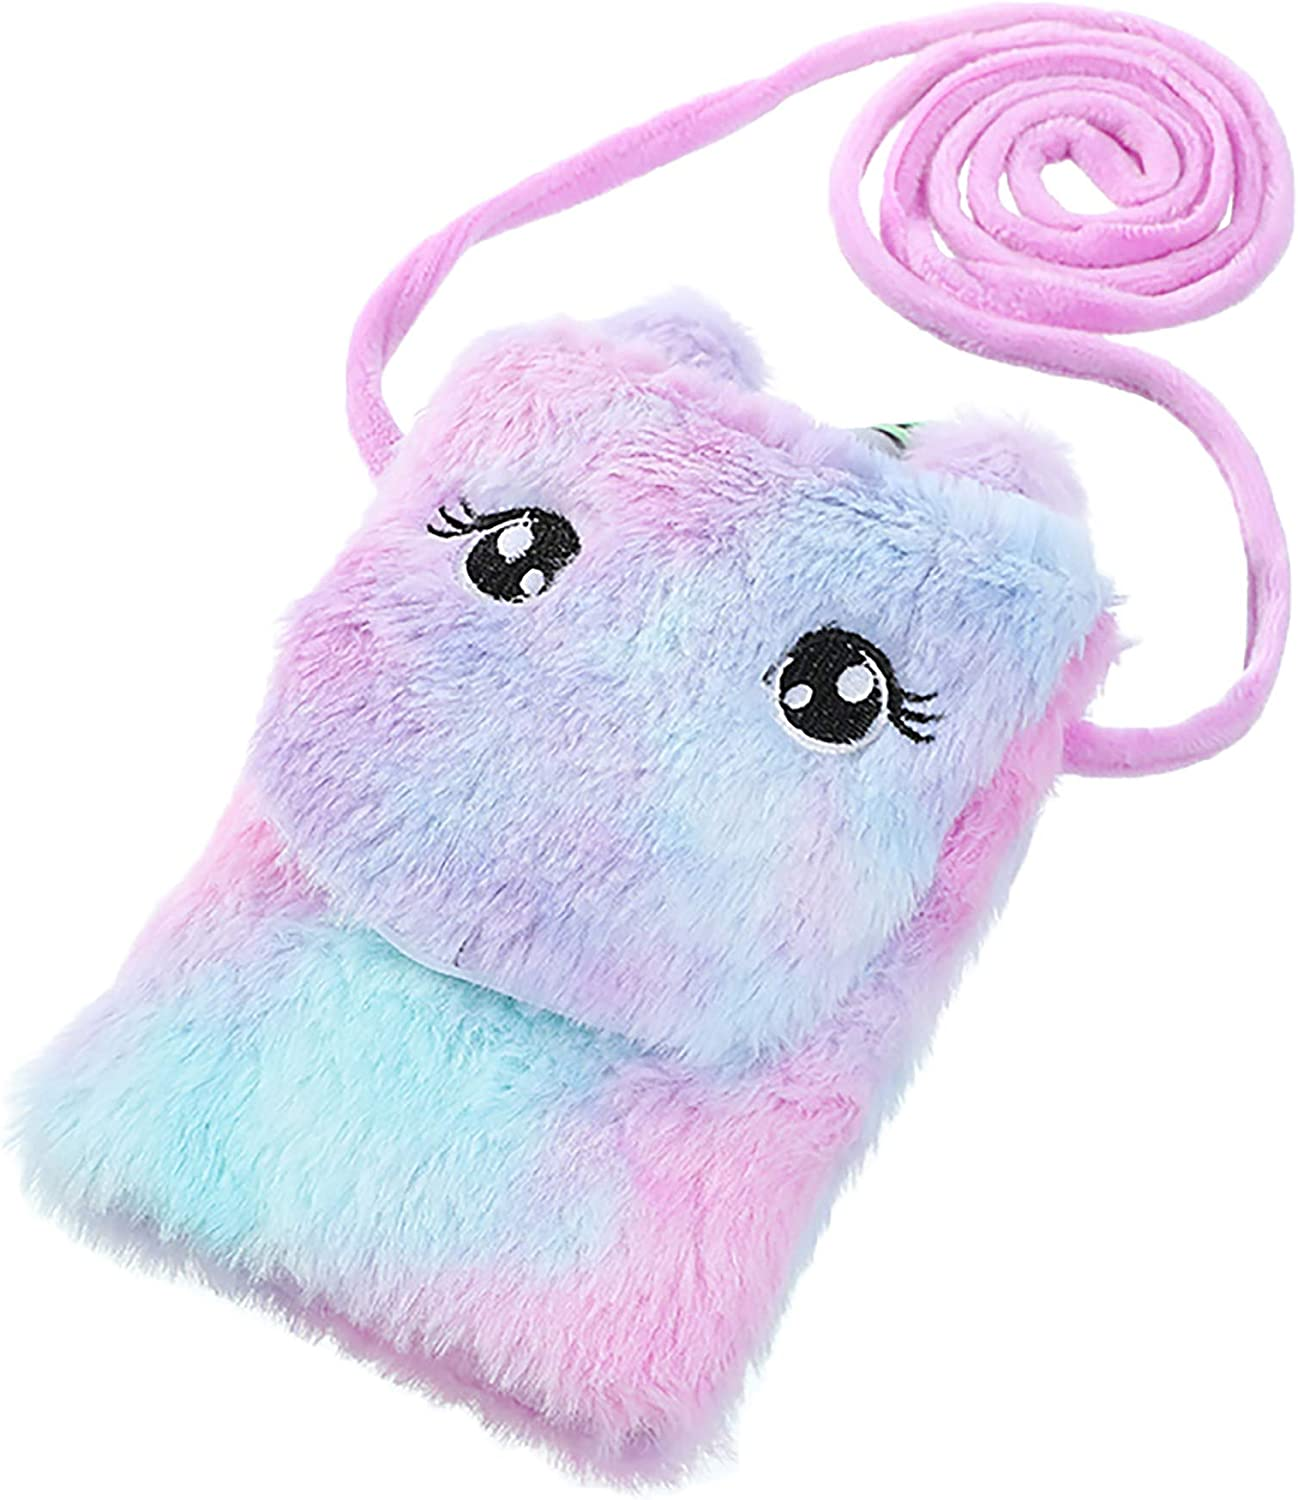 Animecos Plush Animal Fanny Pack Bags Waist Belt Cross Cute Max 90% OFF Shipping included